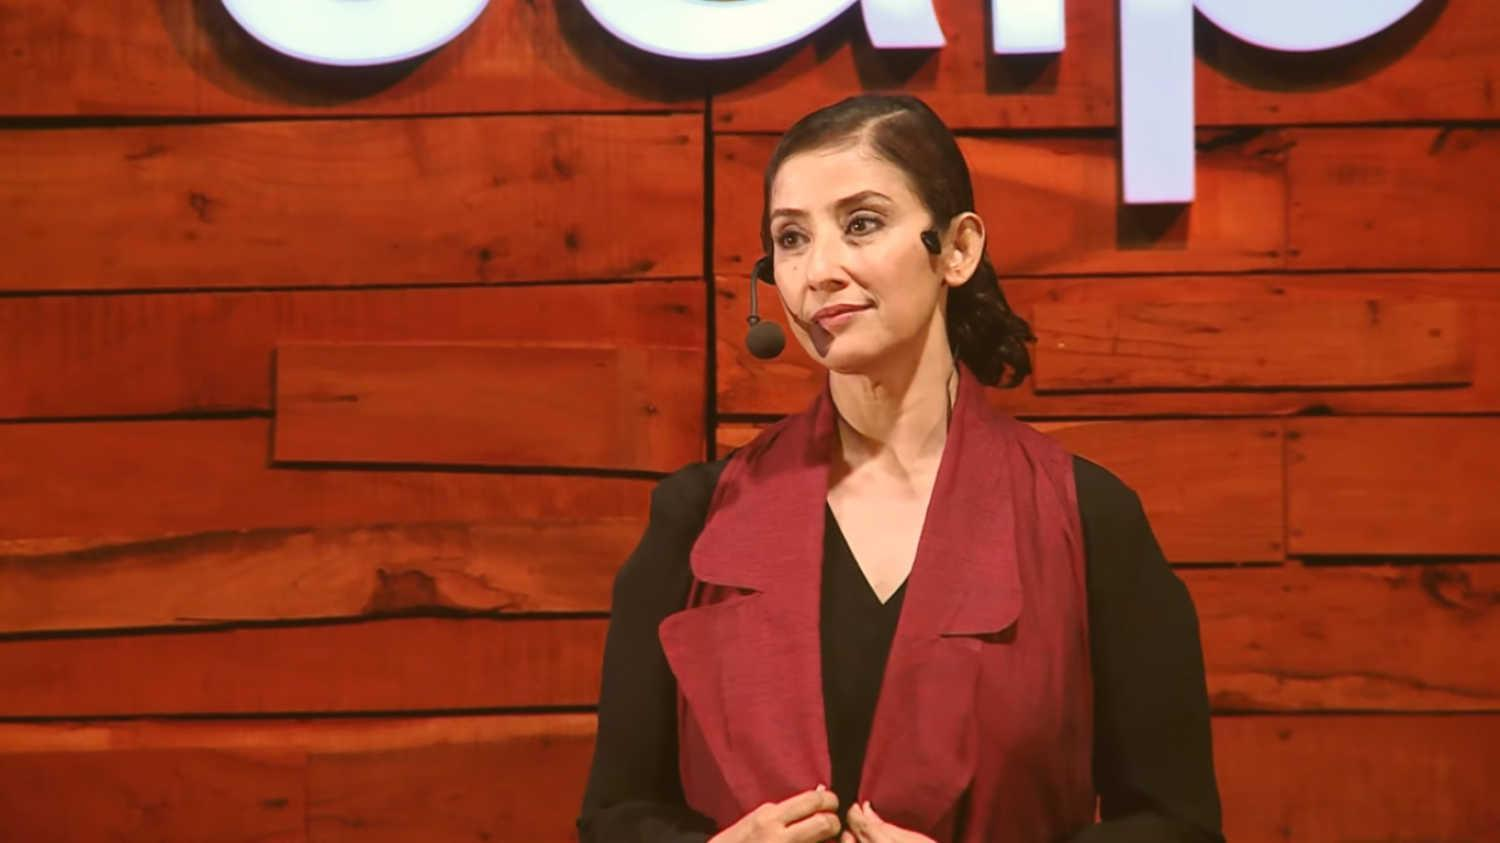 WATCH: Manish Koirala's Inspiring TED Talk